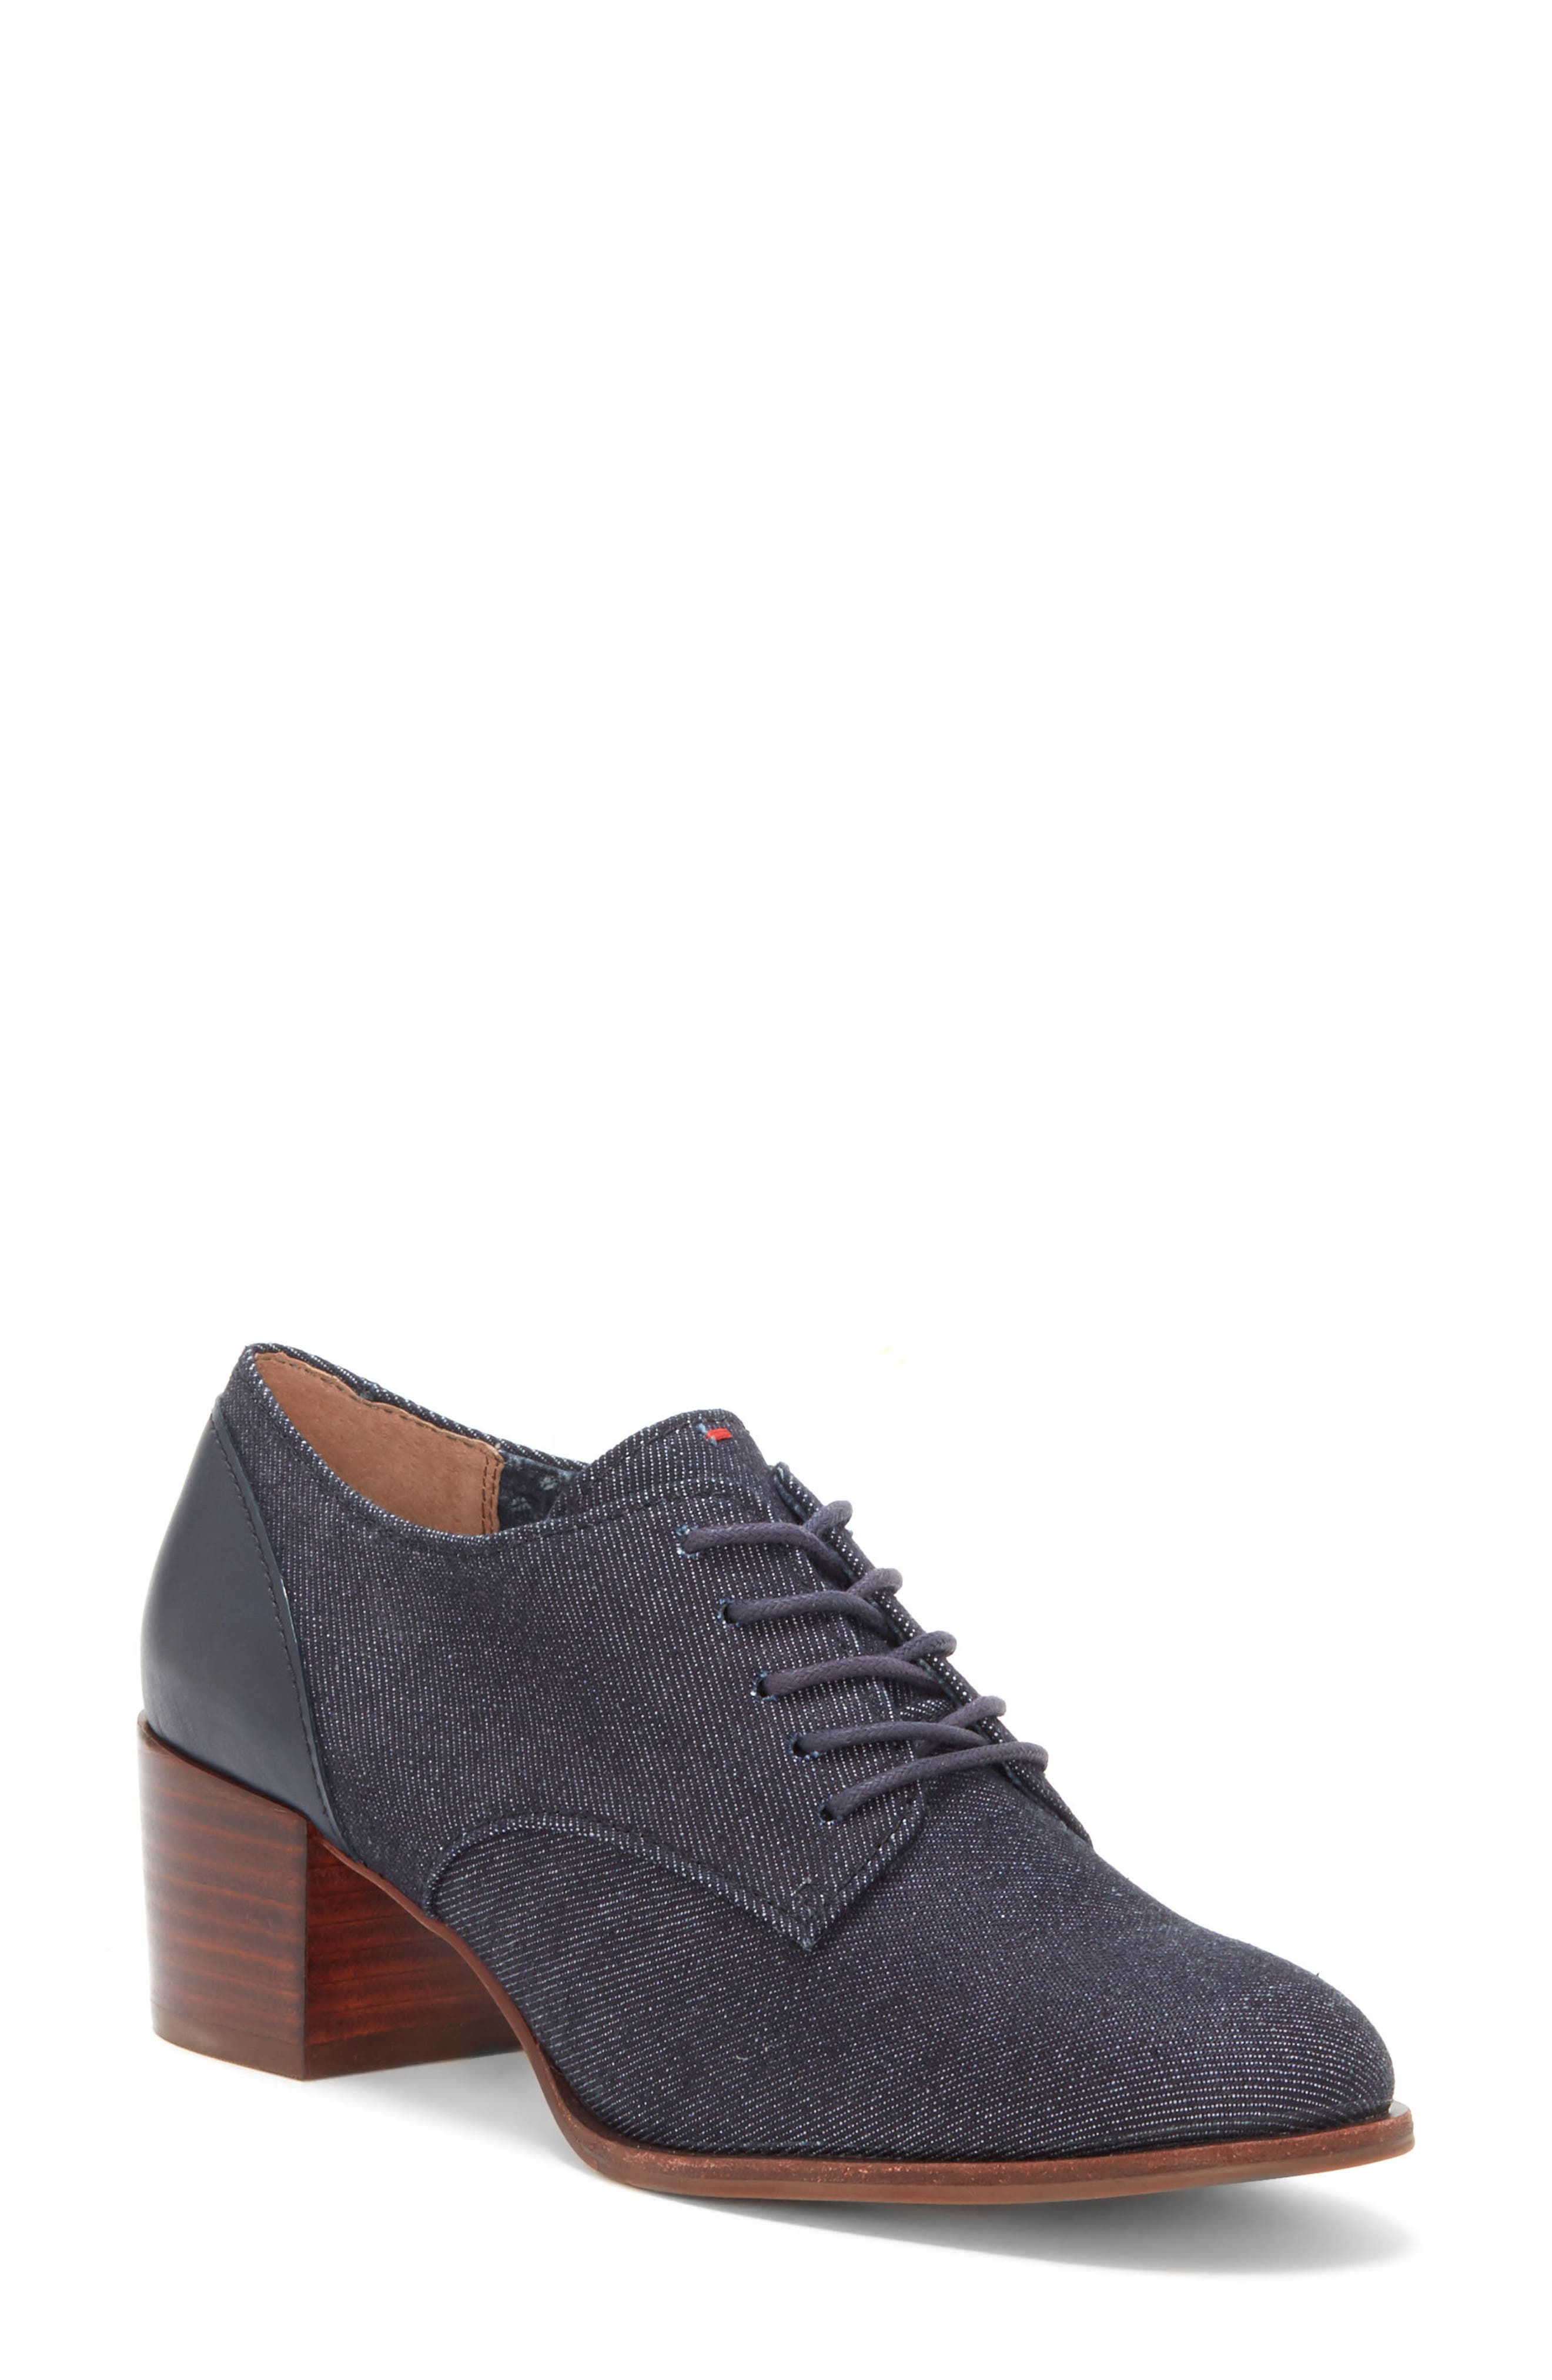 ED Ellen DeGeneres Phoebe Oxford Pump (Women)